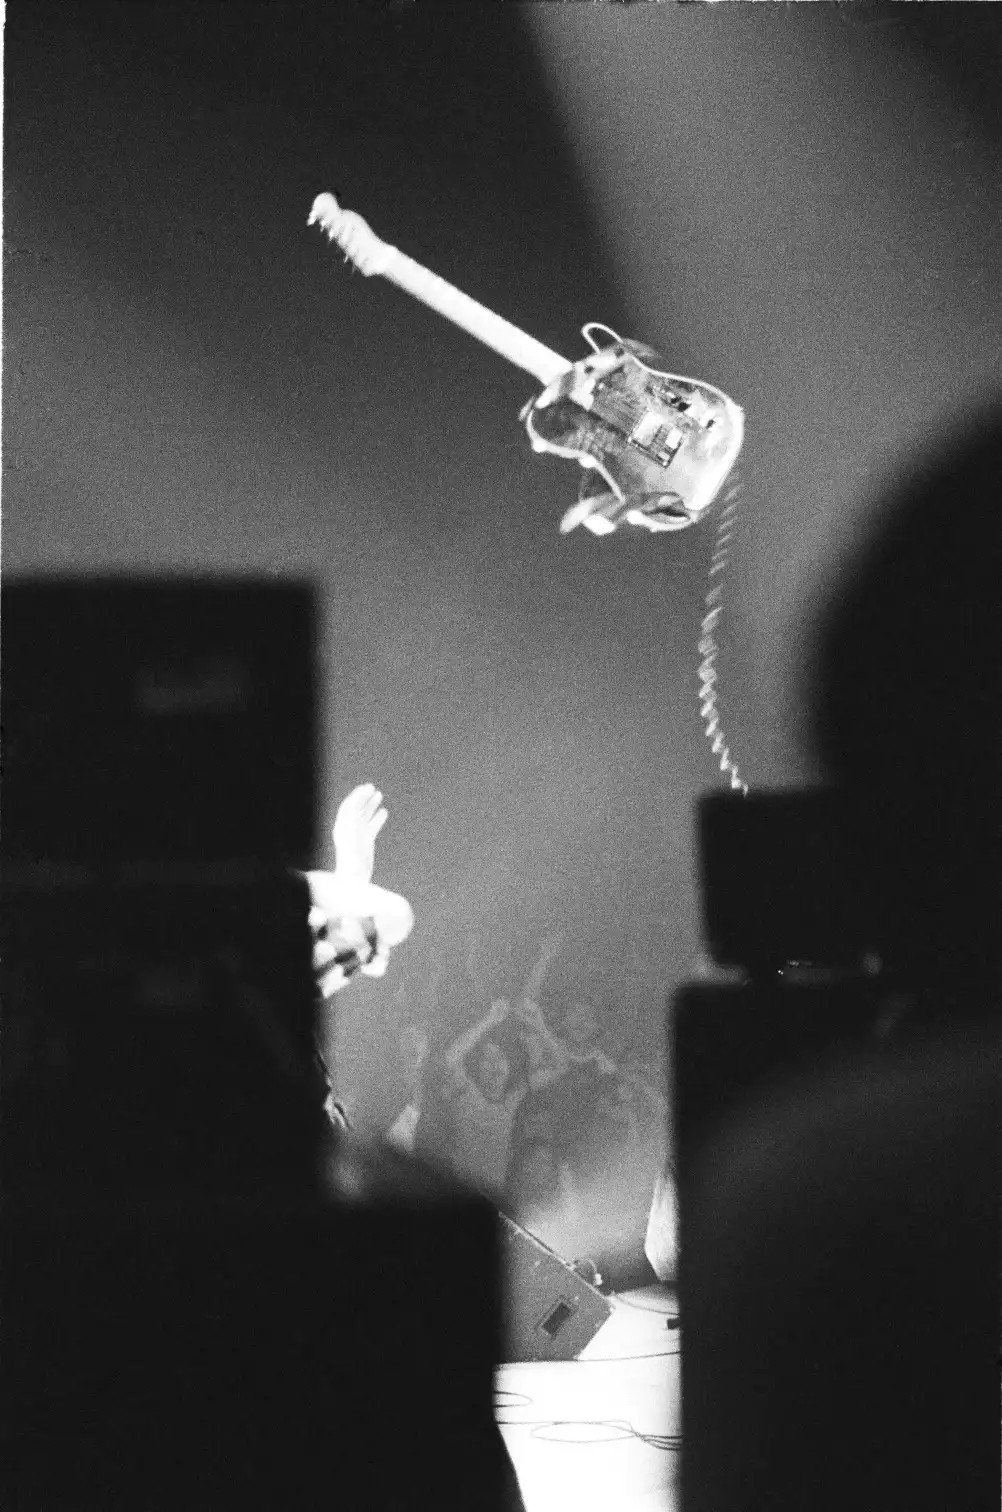 Happy 72nd birthday to Pete Townshend of The note is eternal.